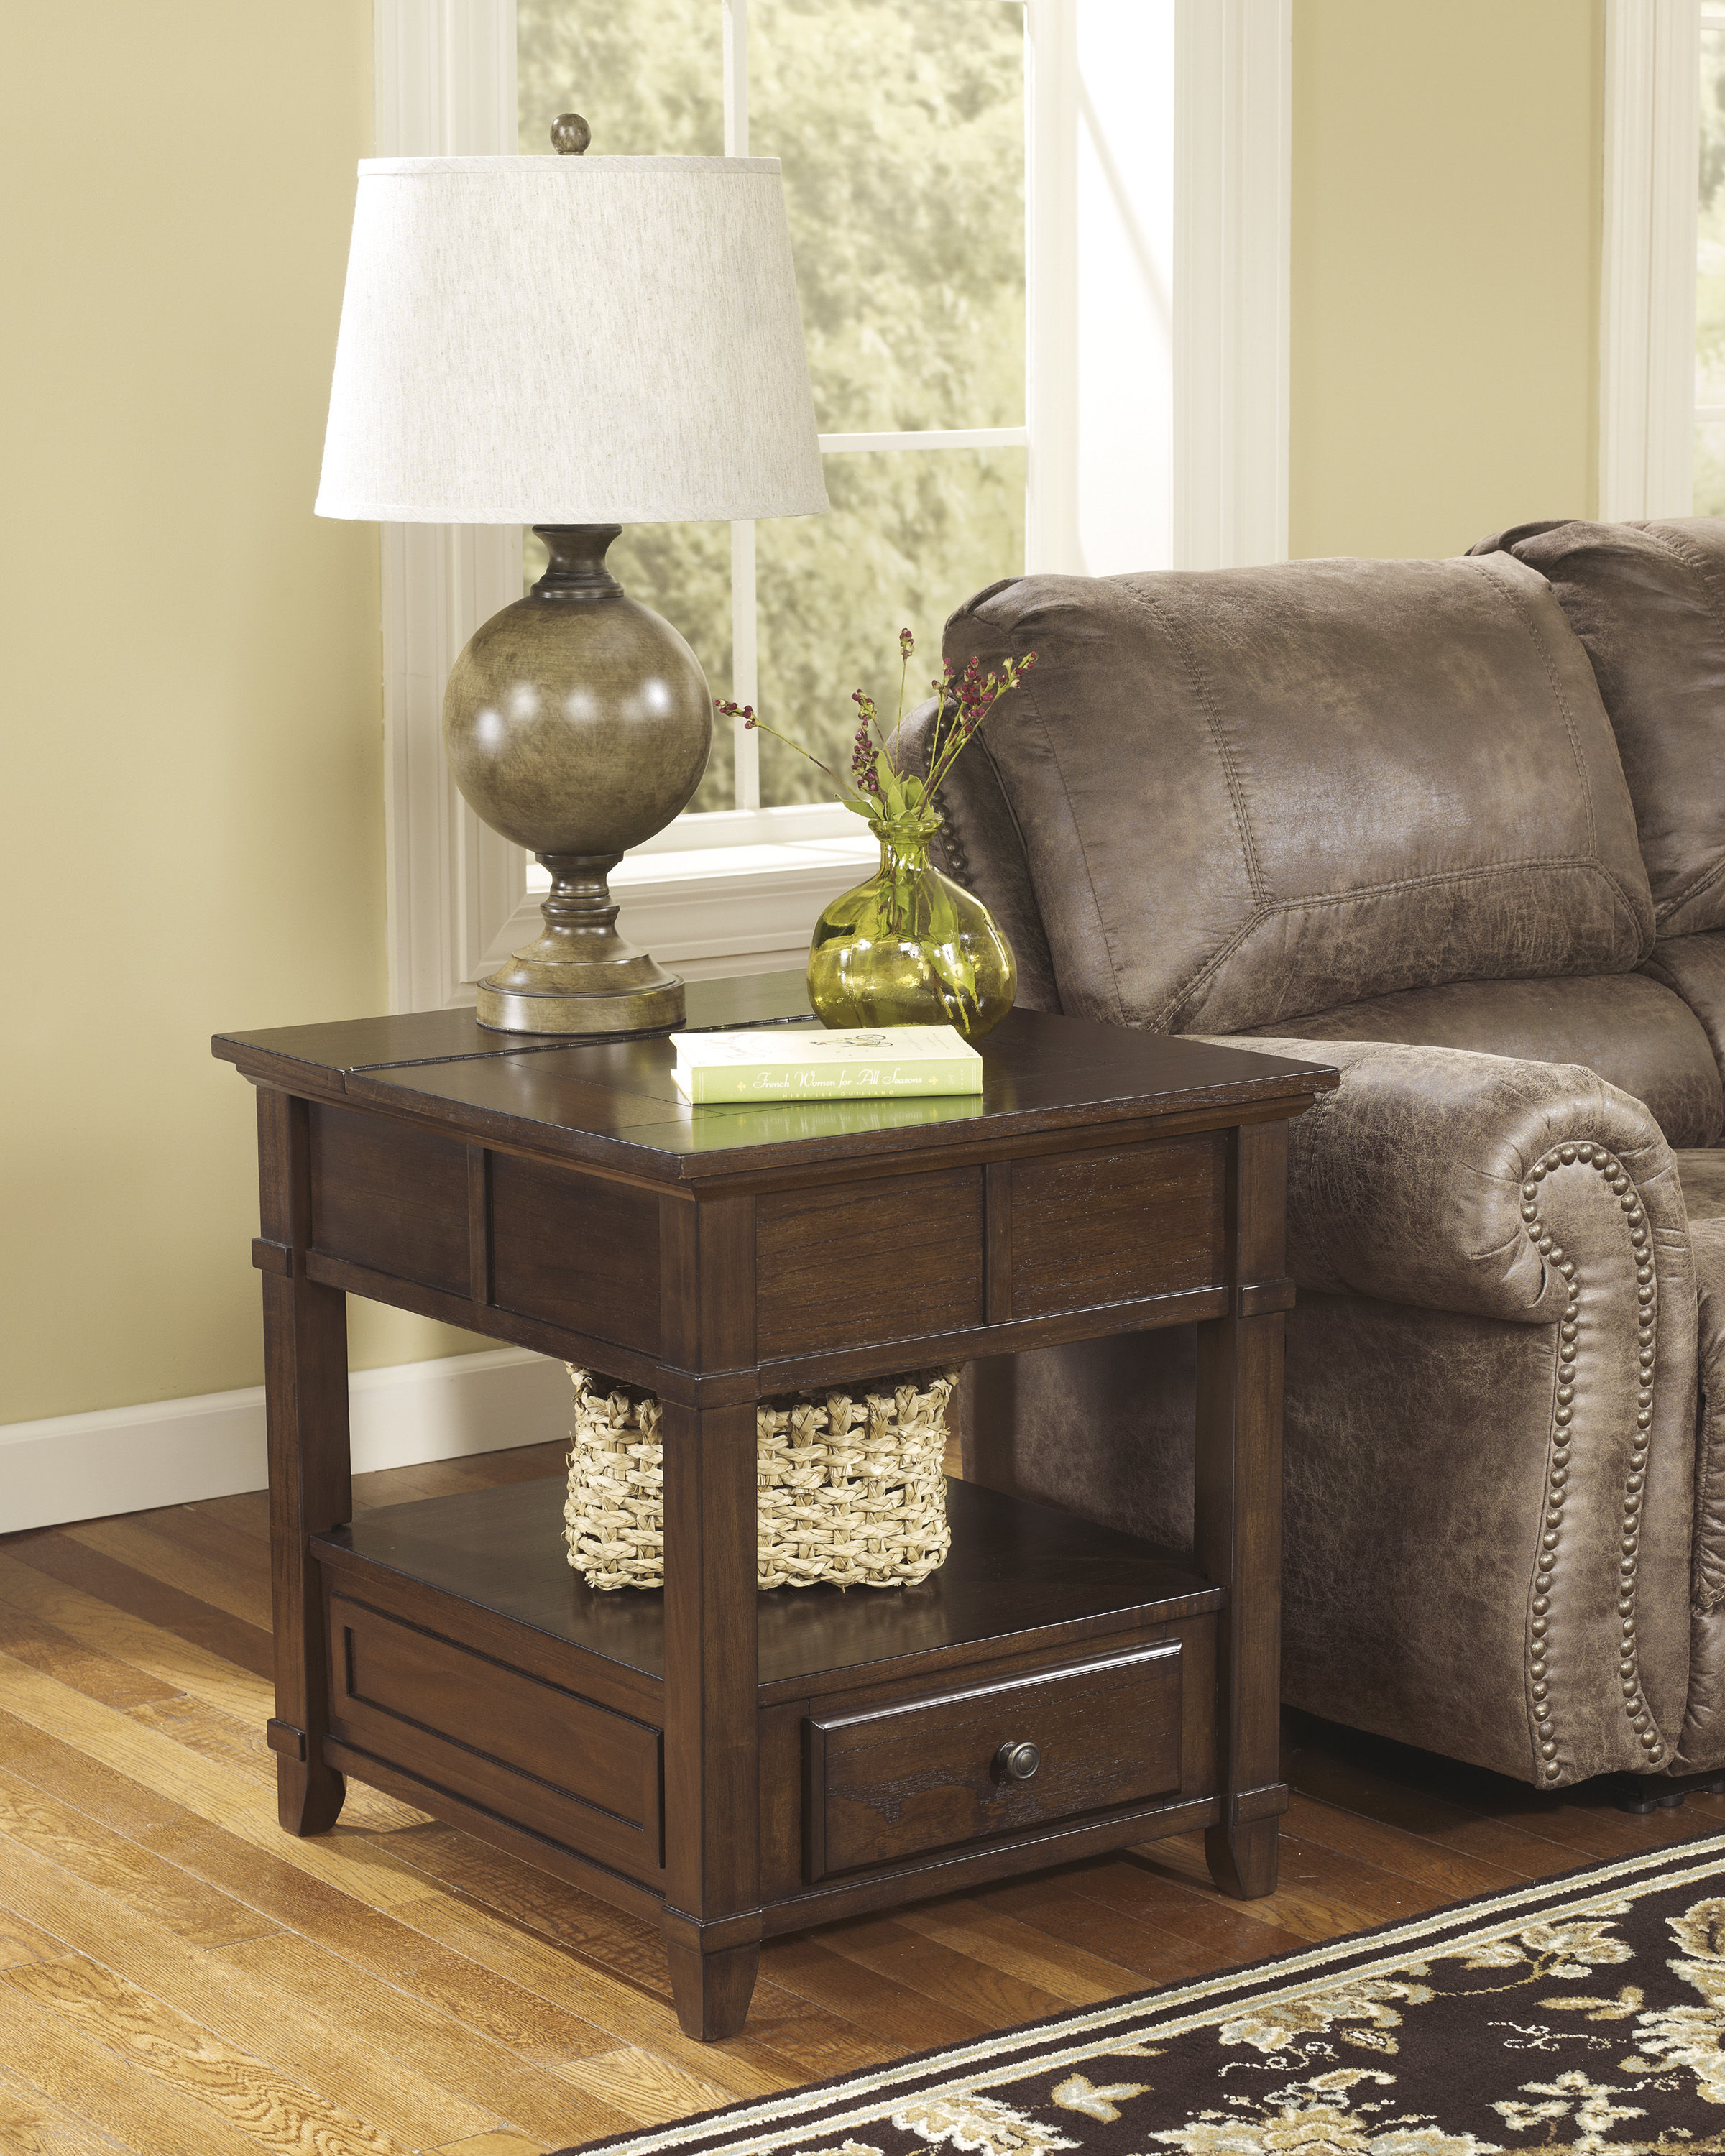 Ashley Furniture Gately Brown End Table The Classy Home